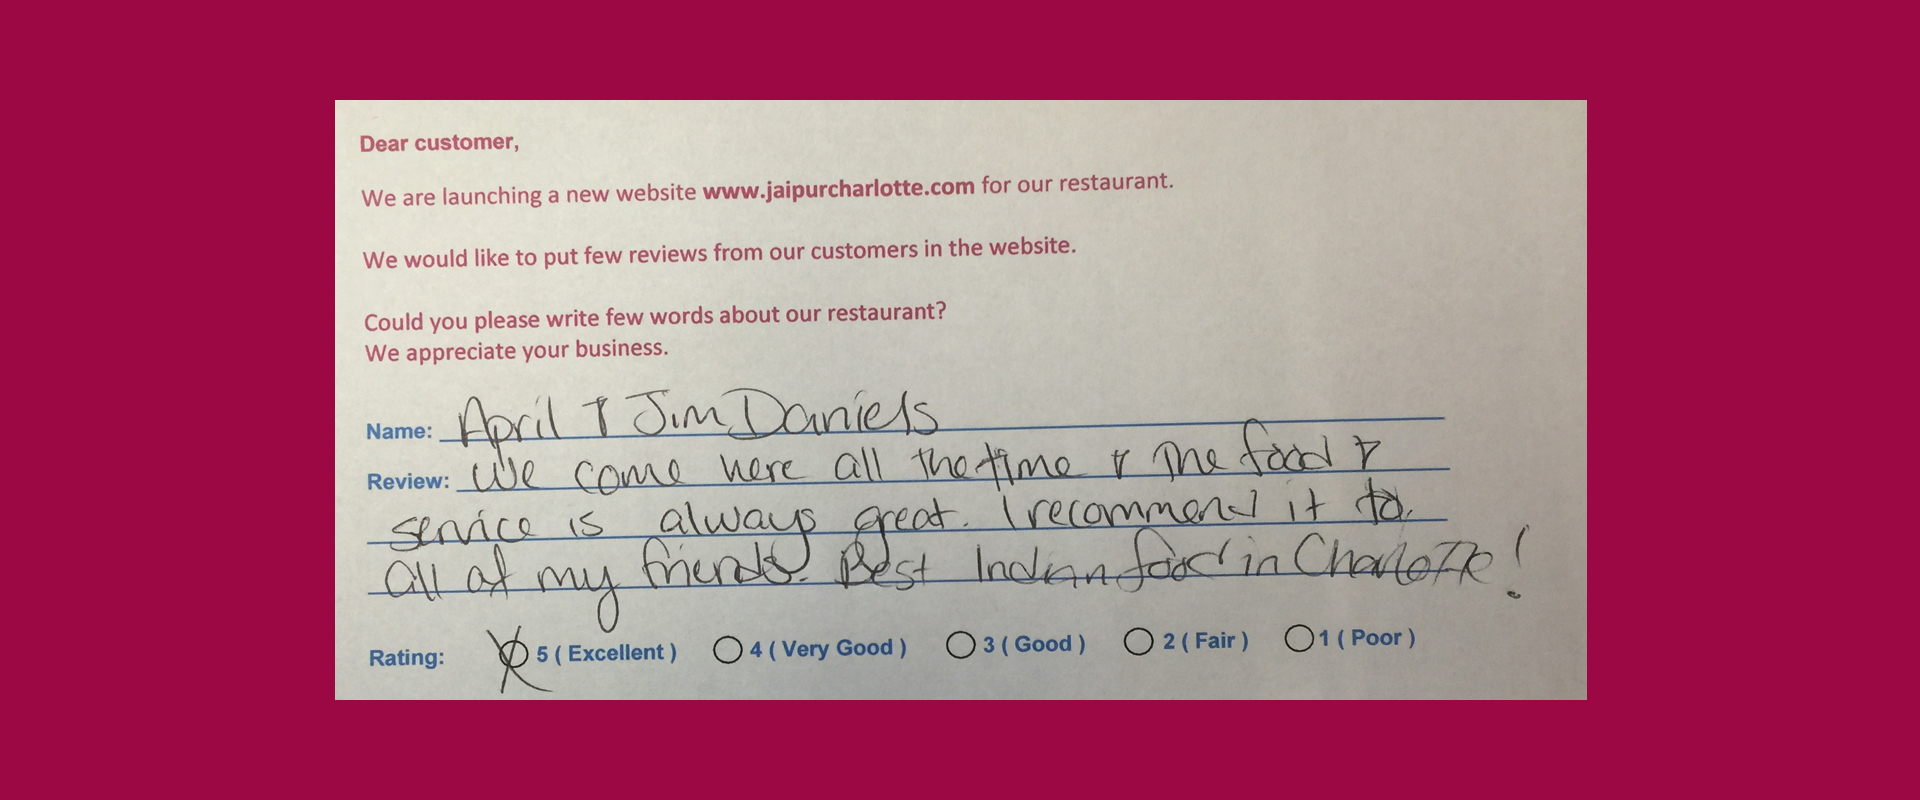 Jaipur Indian Restaurant - Customer Reviews